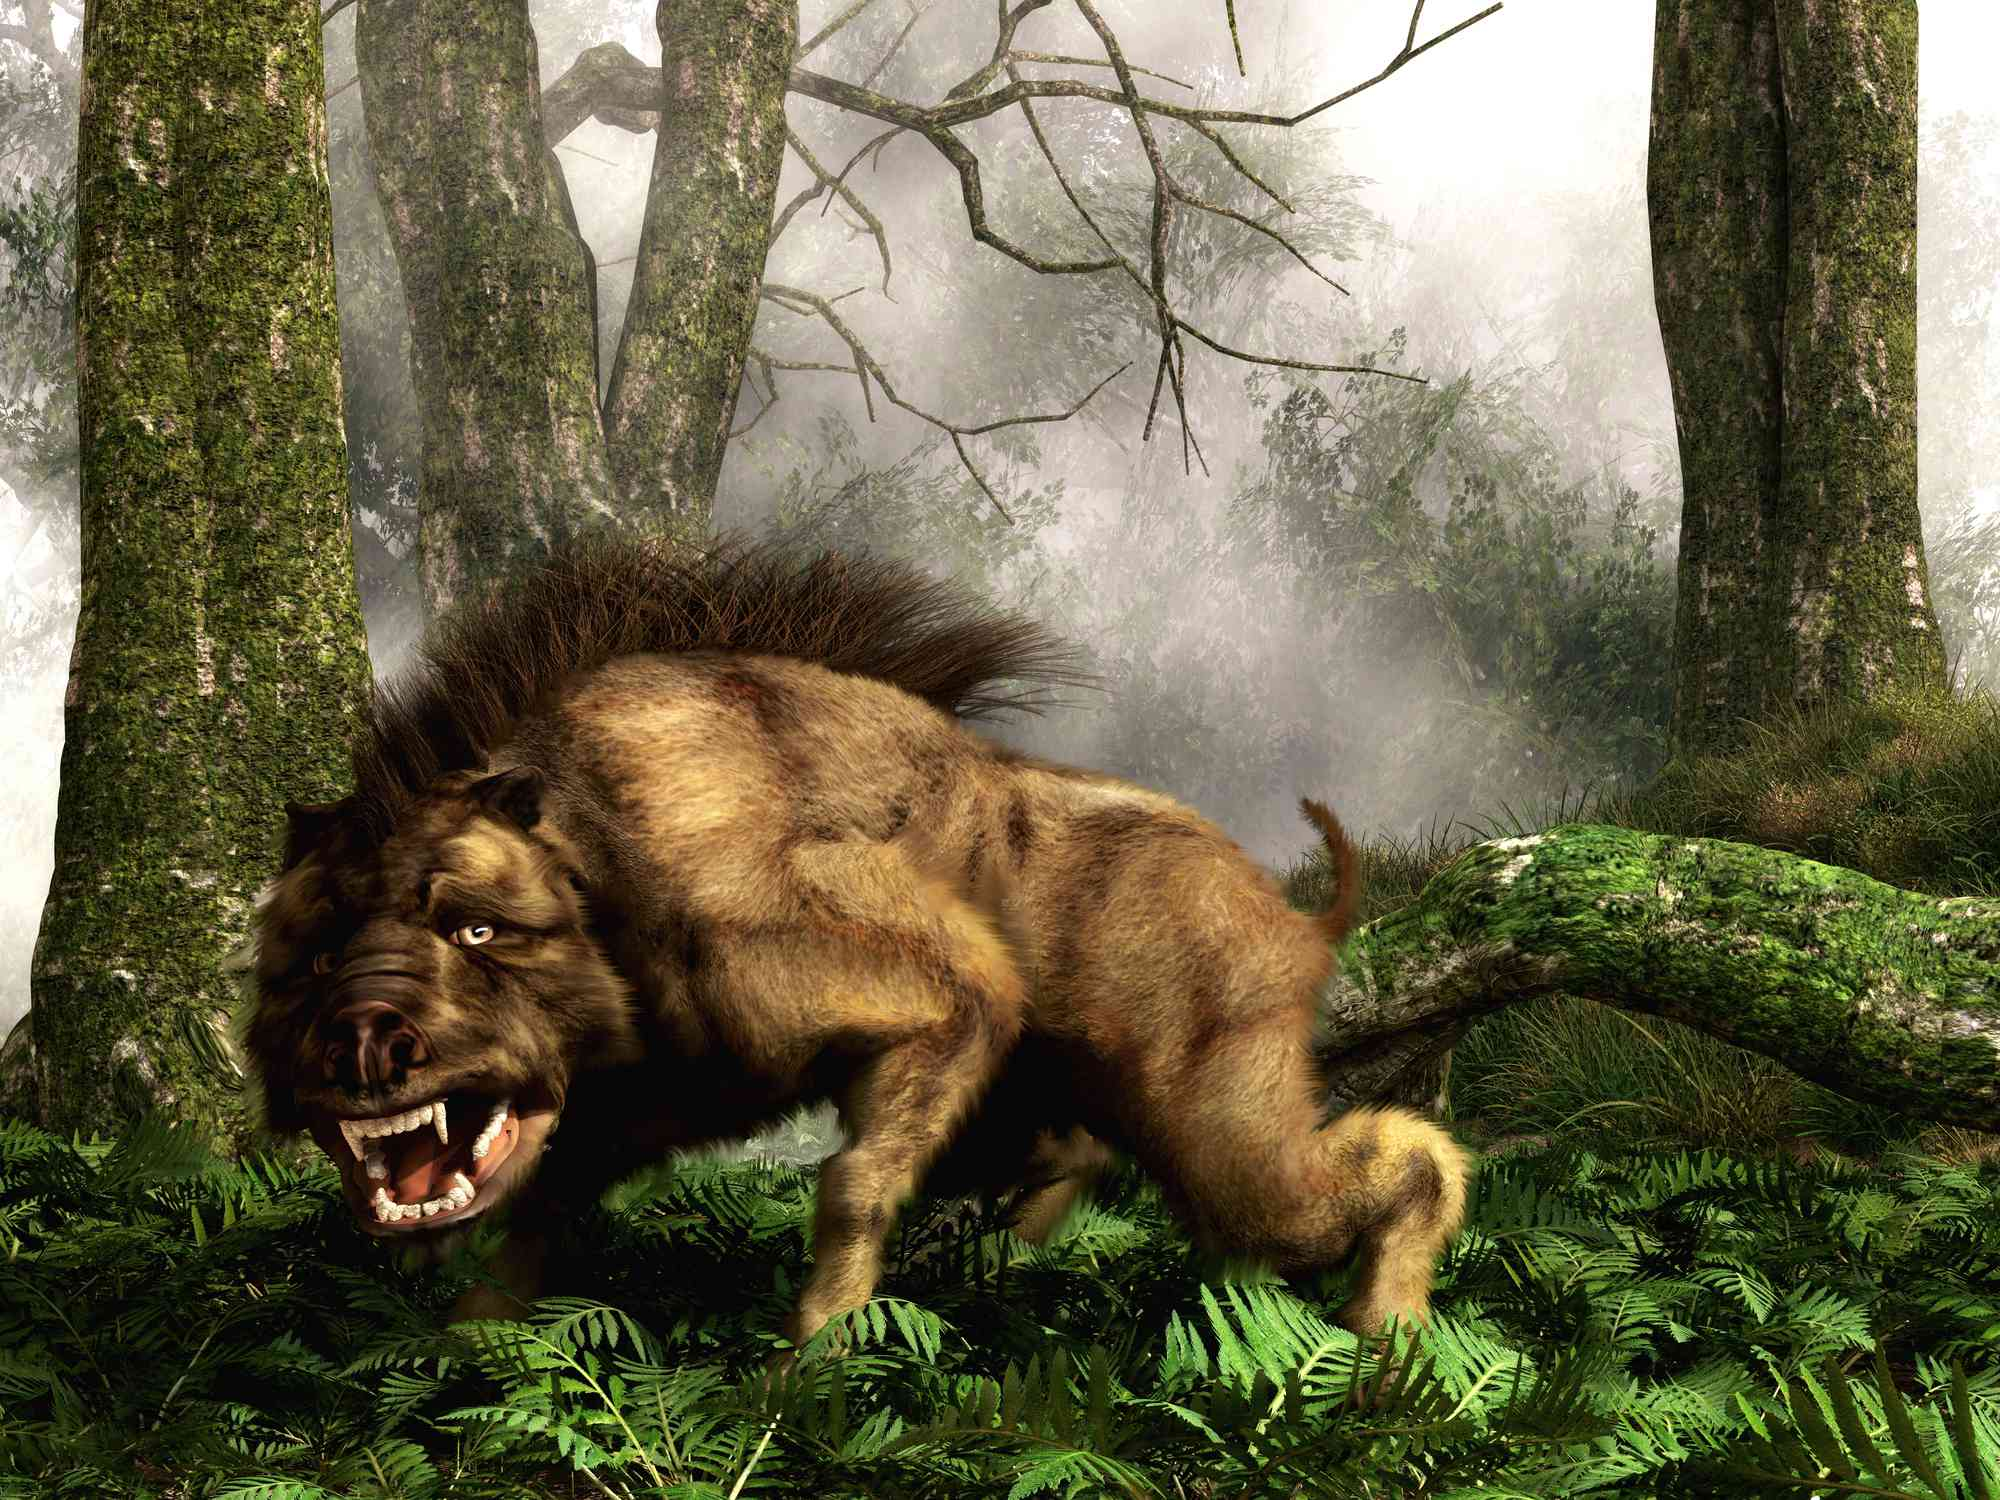 This is a Daeodon, also known as Dinohyus, an ancient relative of the wild boar